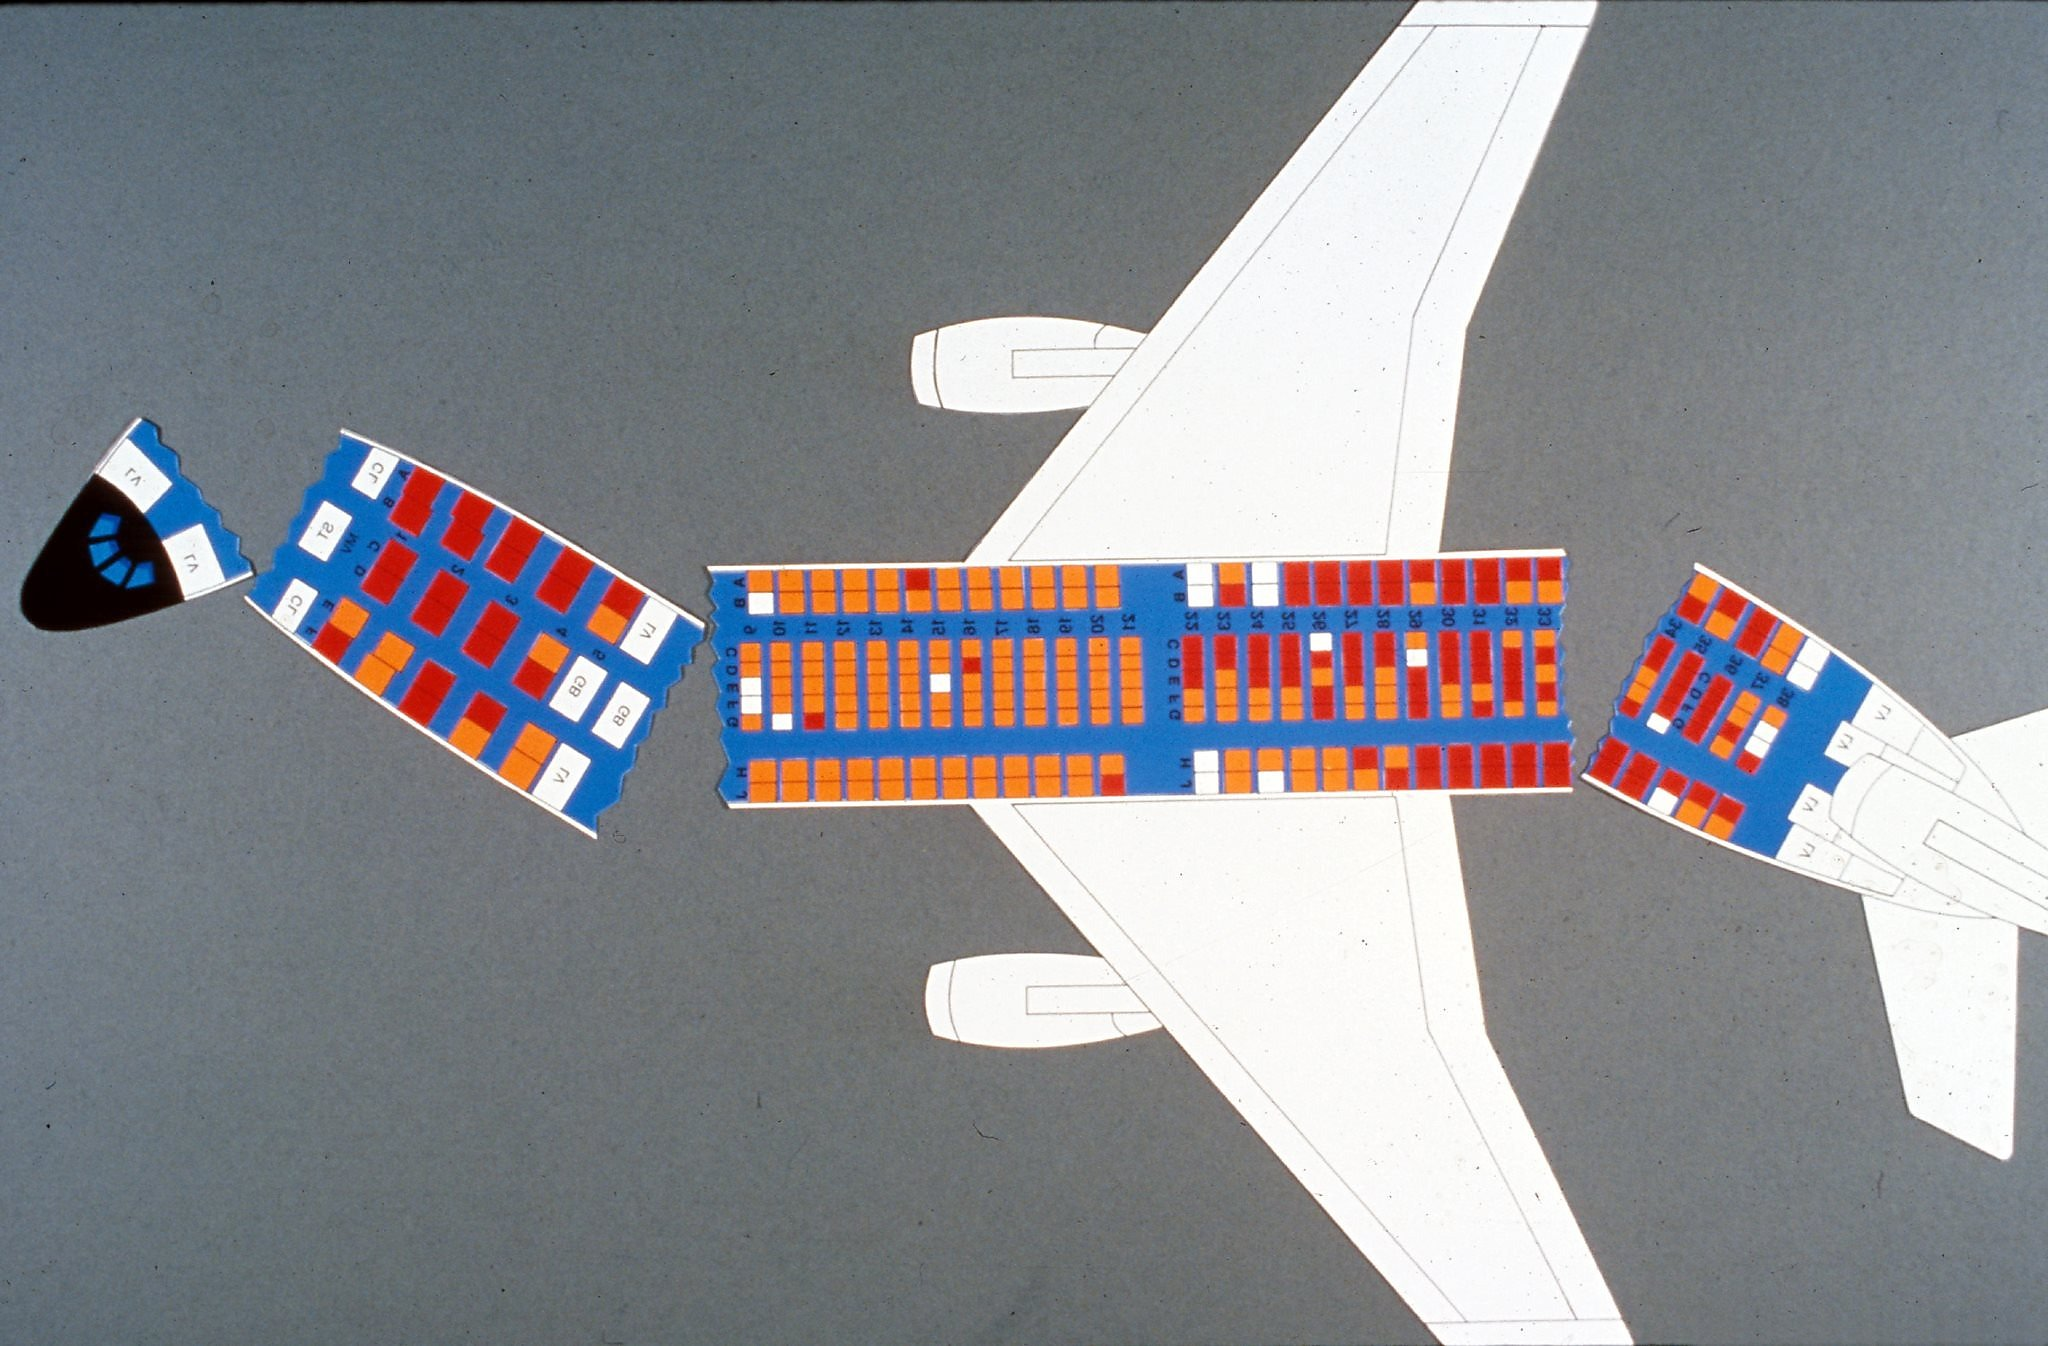 Flight 232 By Laurence Gonzales Sfgate Diagram Of An Airplane